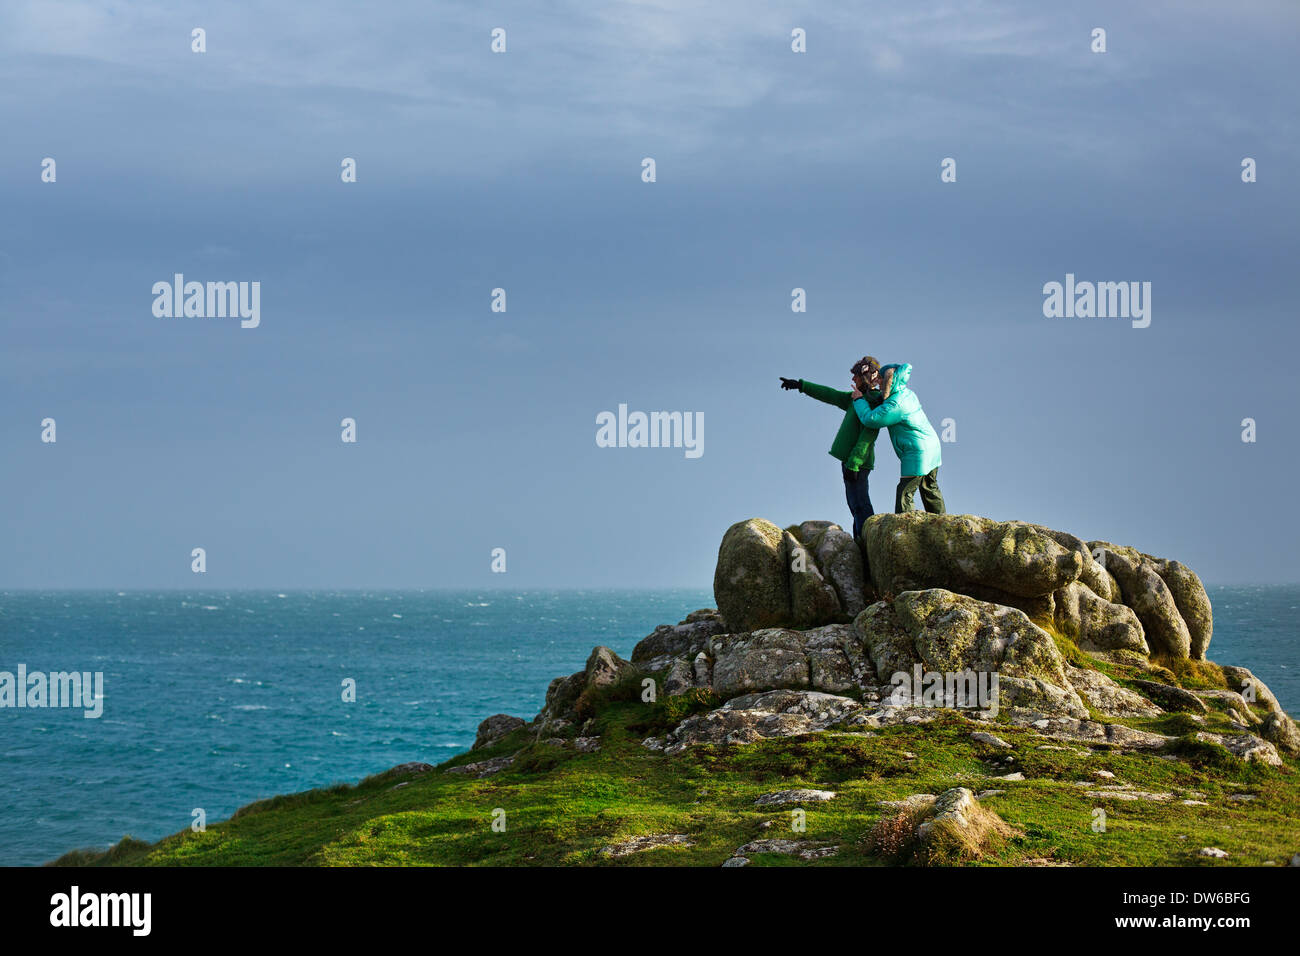 A couple standing on a rock pointing out to sea on the Isles of Scilly - Stock Image